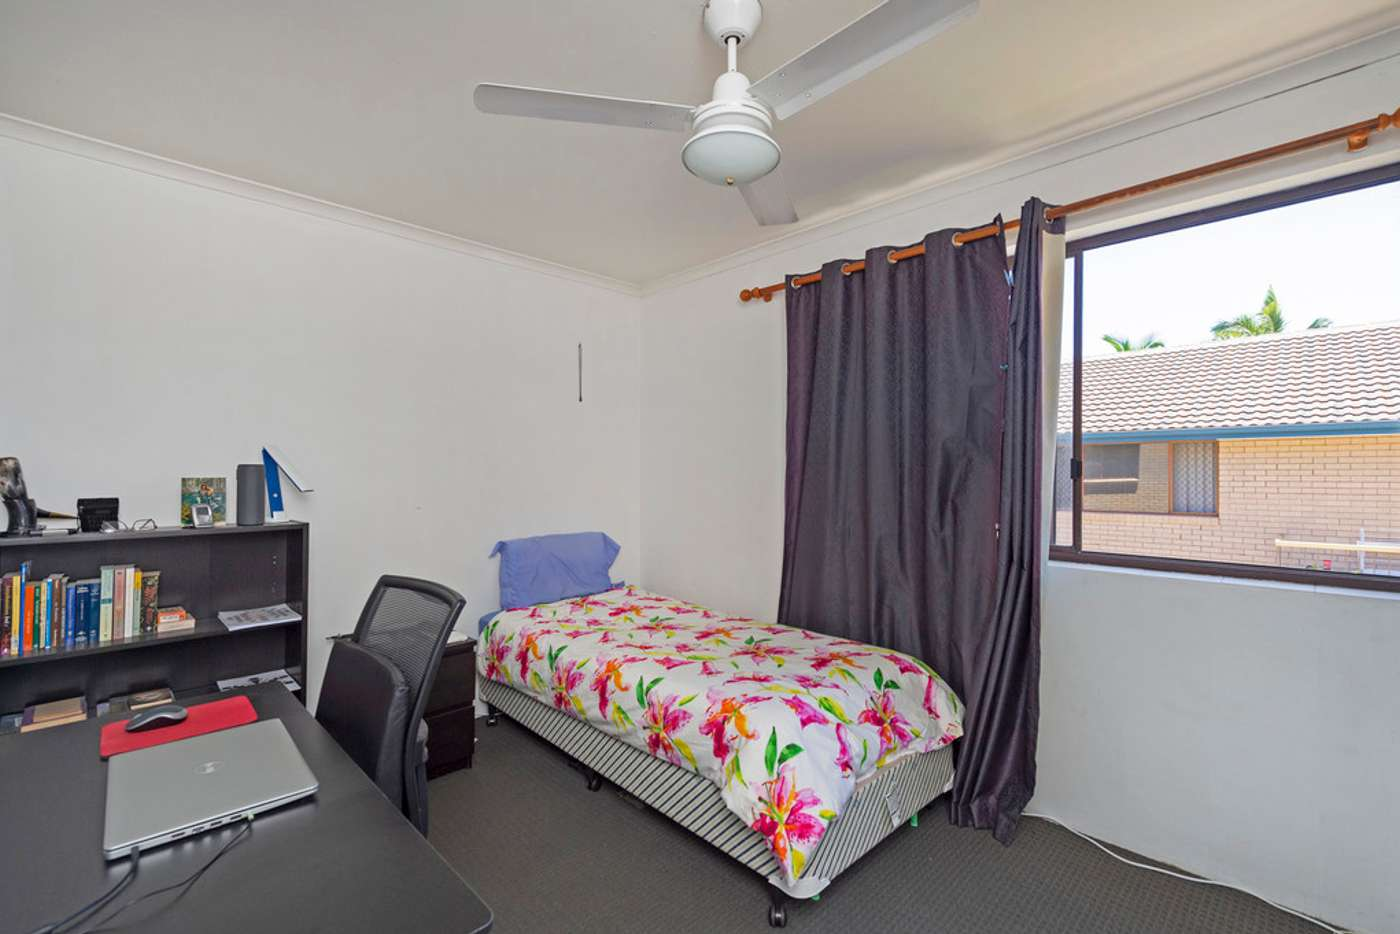 Sixth view of Homely unit listing, 10/25 Imperial Parade, Labrador QLD 4215